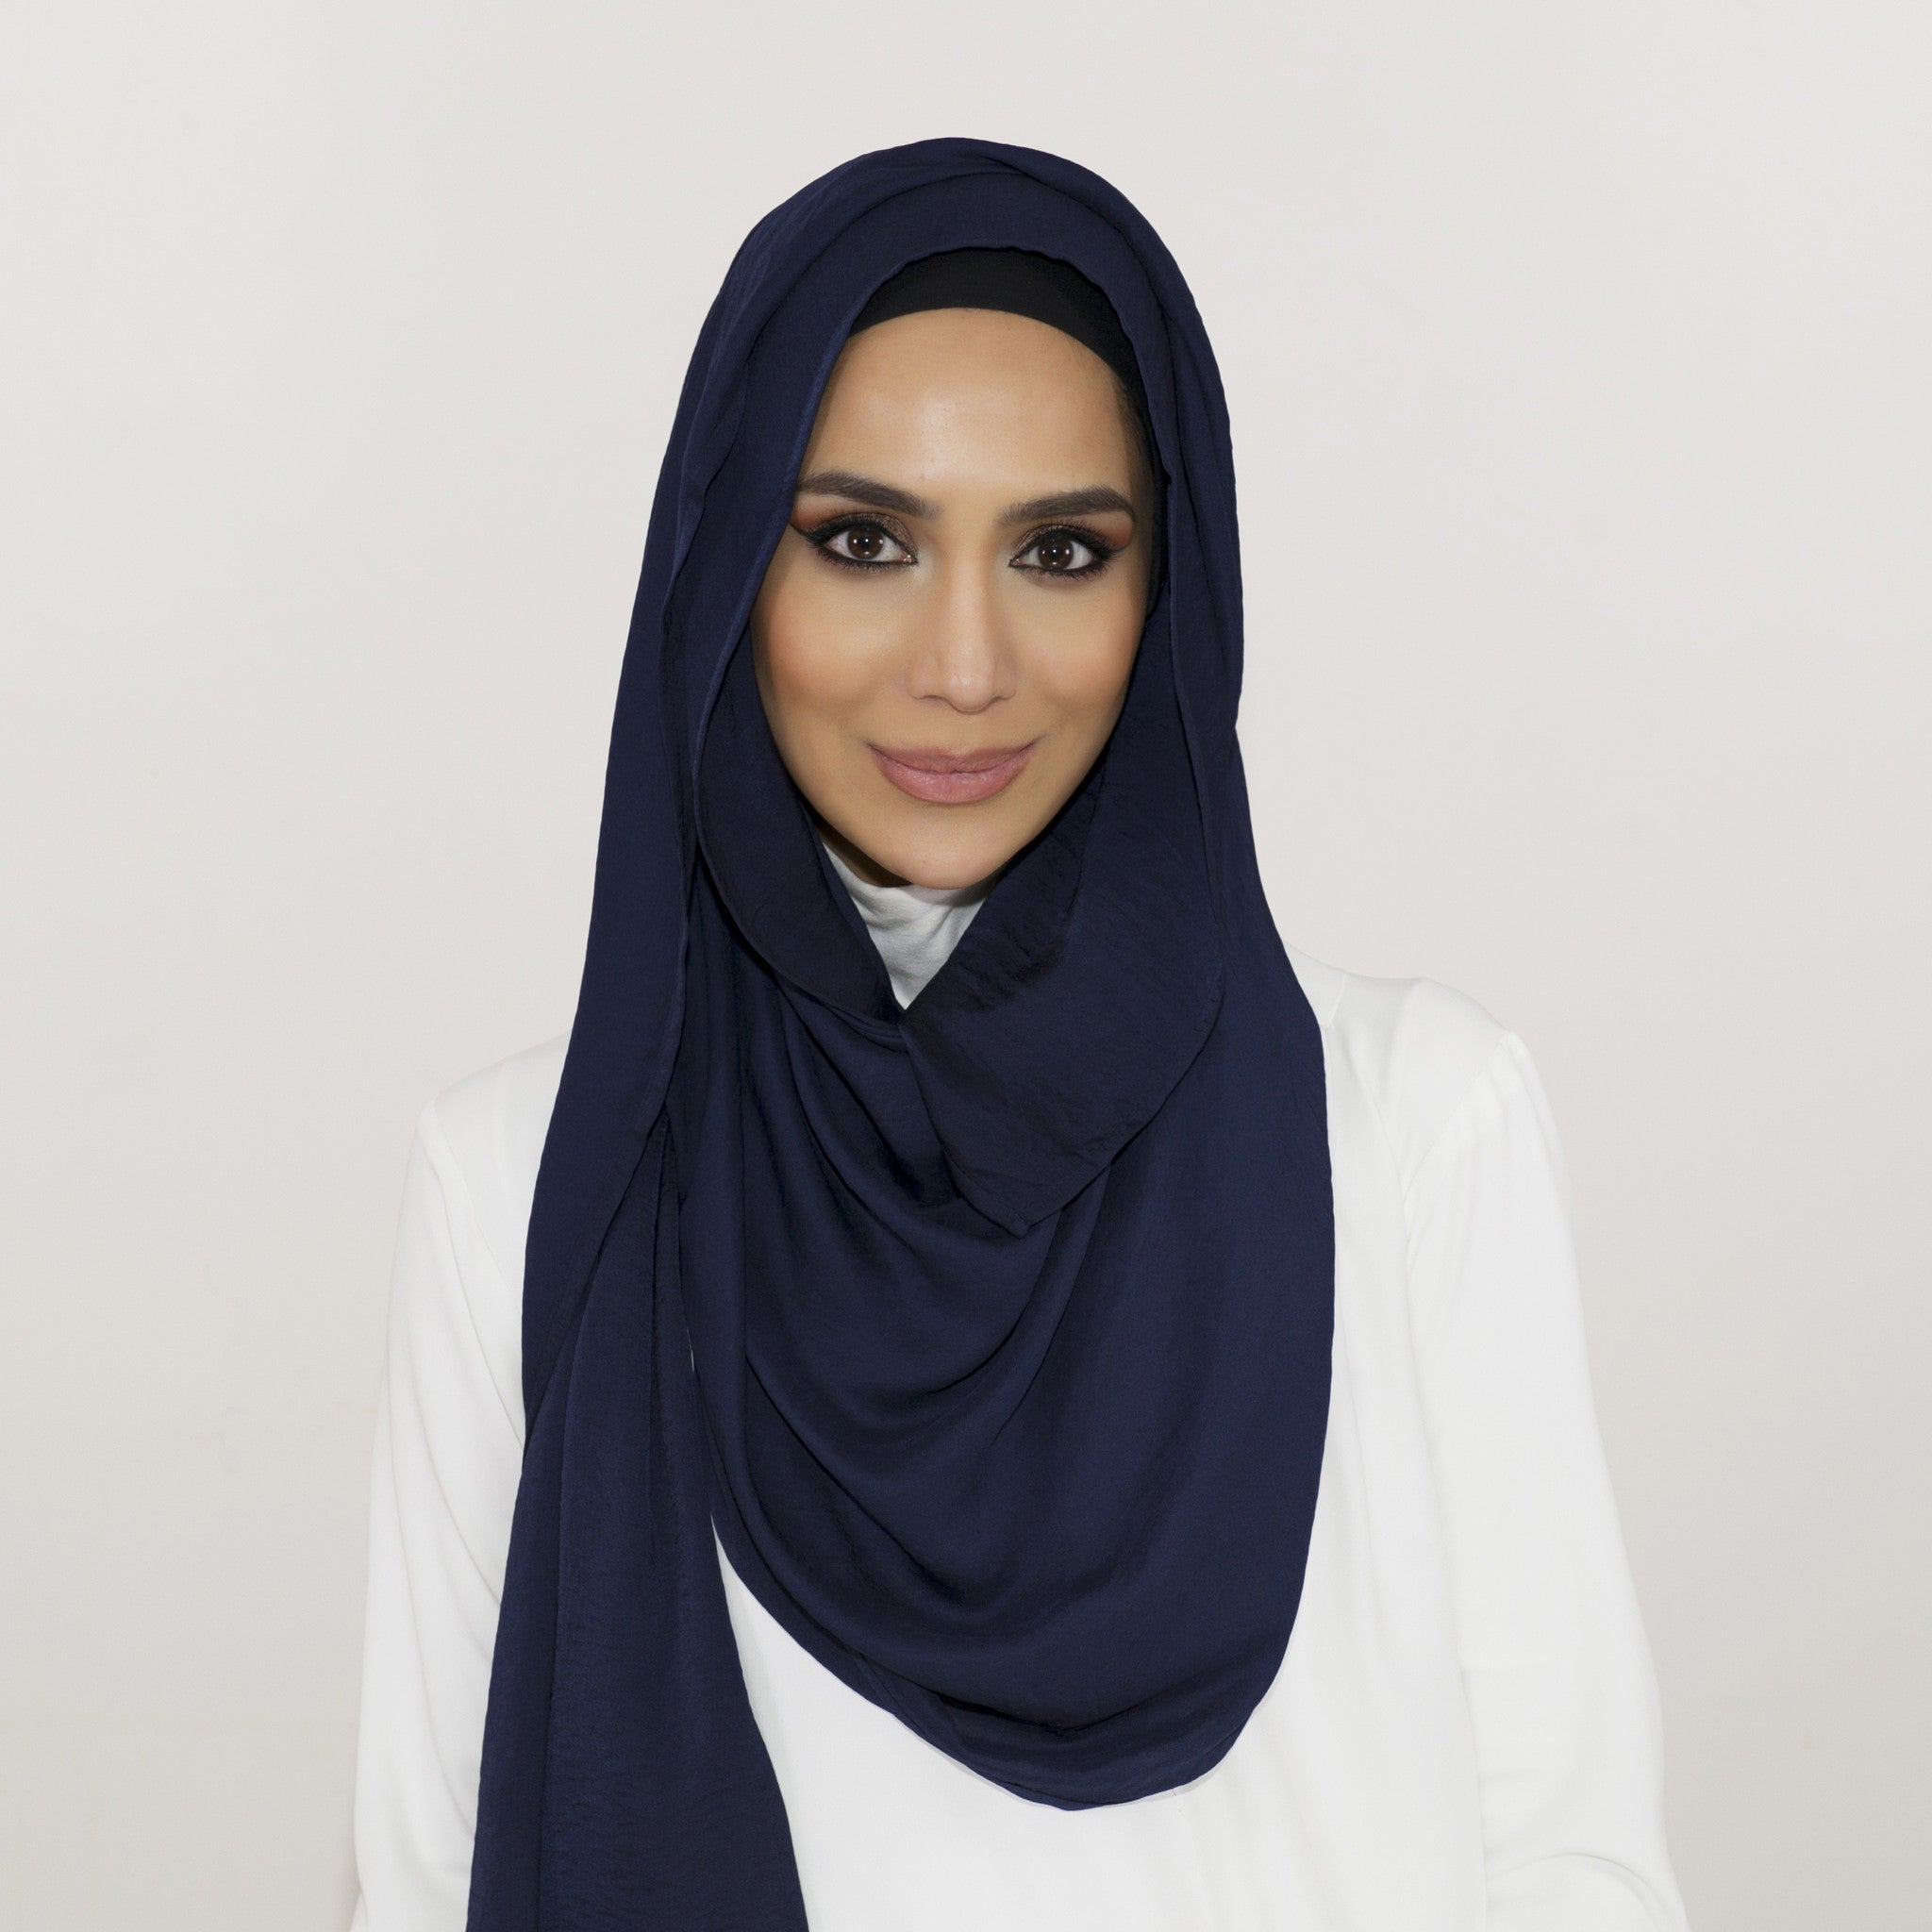 Smooth Crushed Navy Hijab